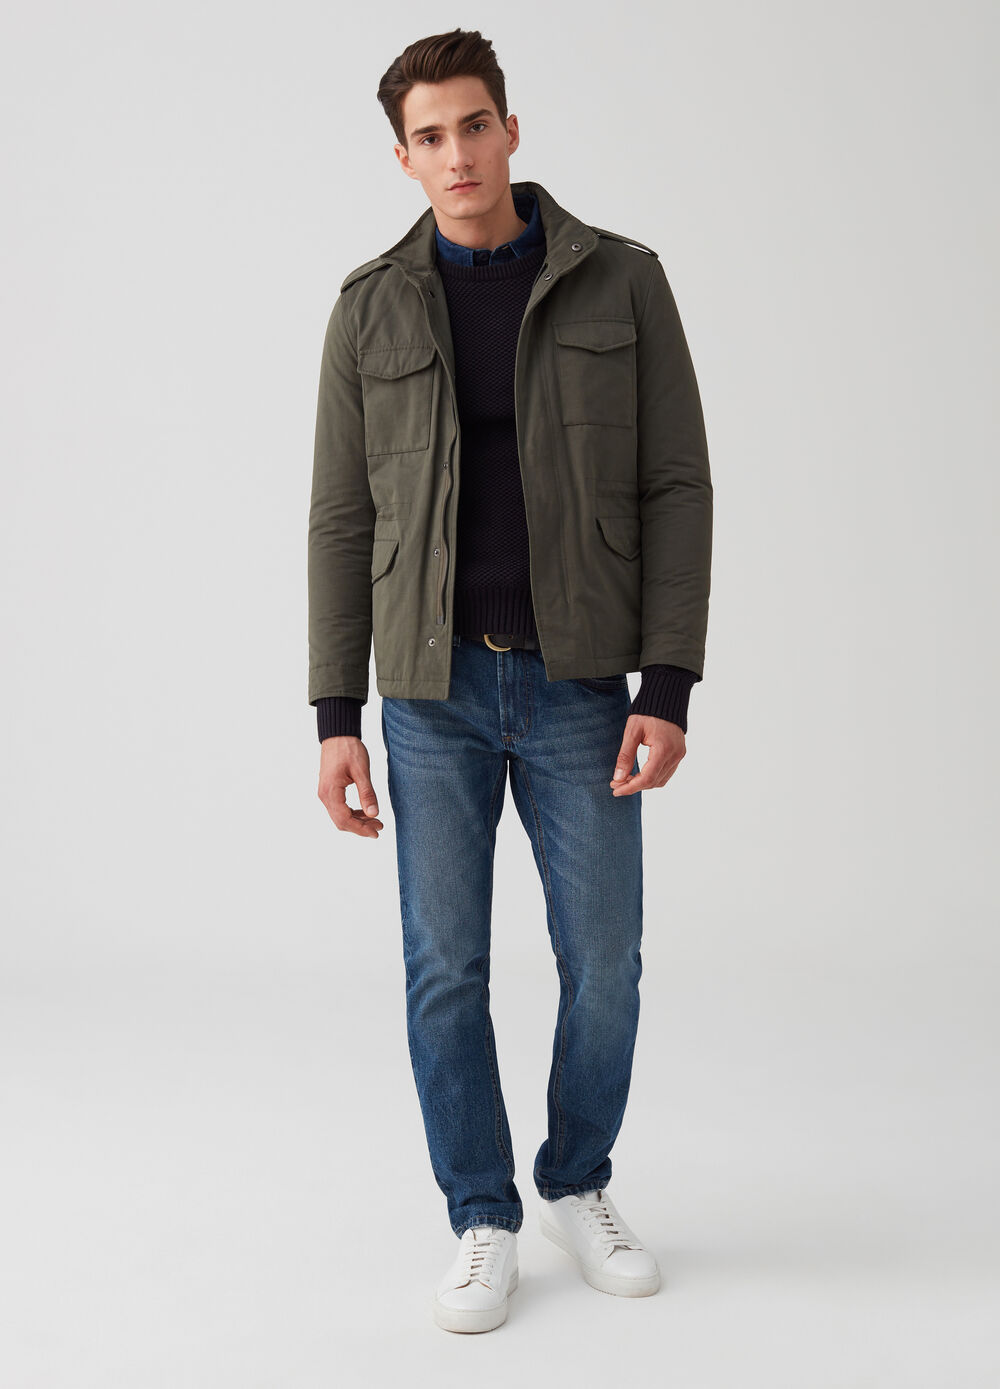 Jacket with pockets and zip fastening